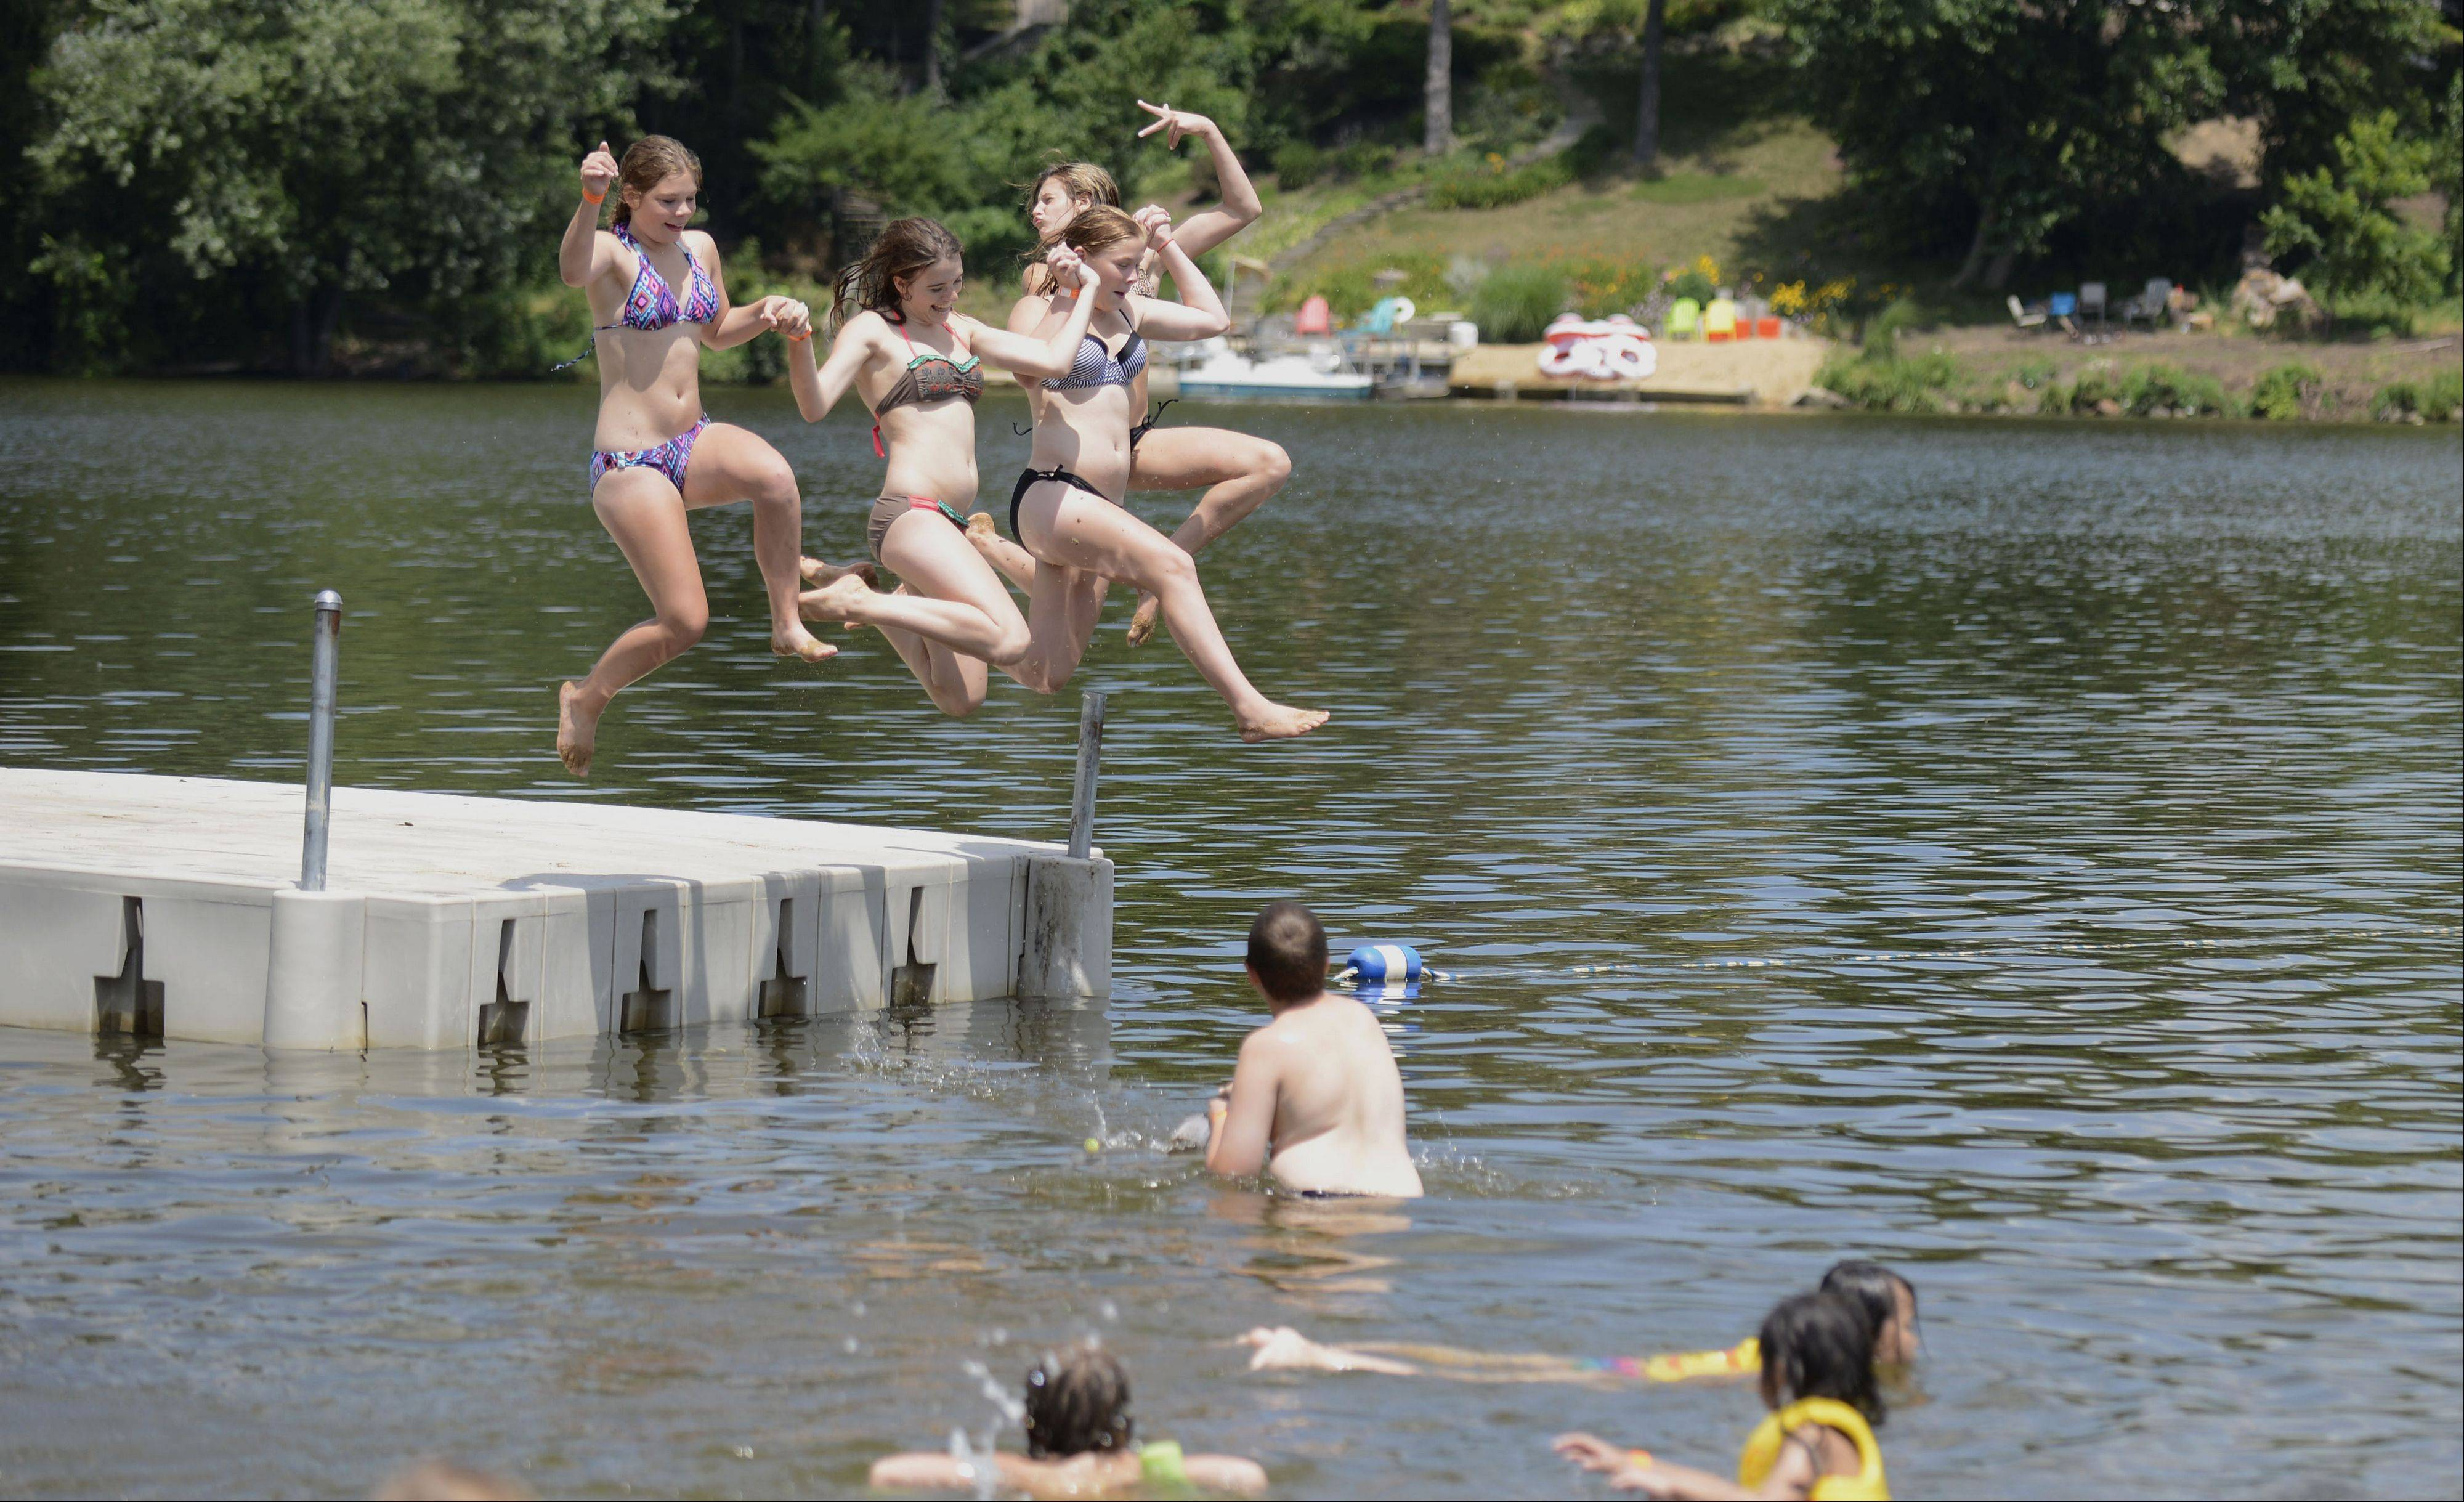 Olivia Warchol, Tessa Morse, McKenna Warchol, and Niki DeVita, all 14 and from Algonquin, plunge hand-in-hand off the dock at Woods Creek Lake in Lake in the Hills on Thursday.